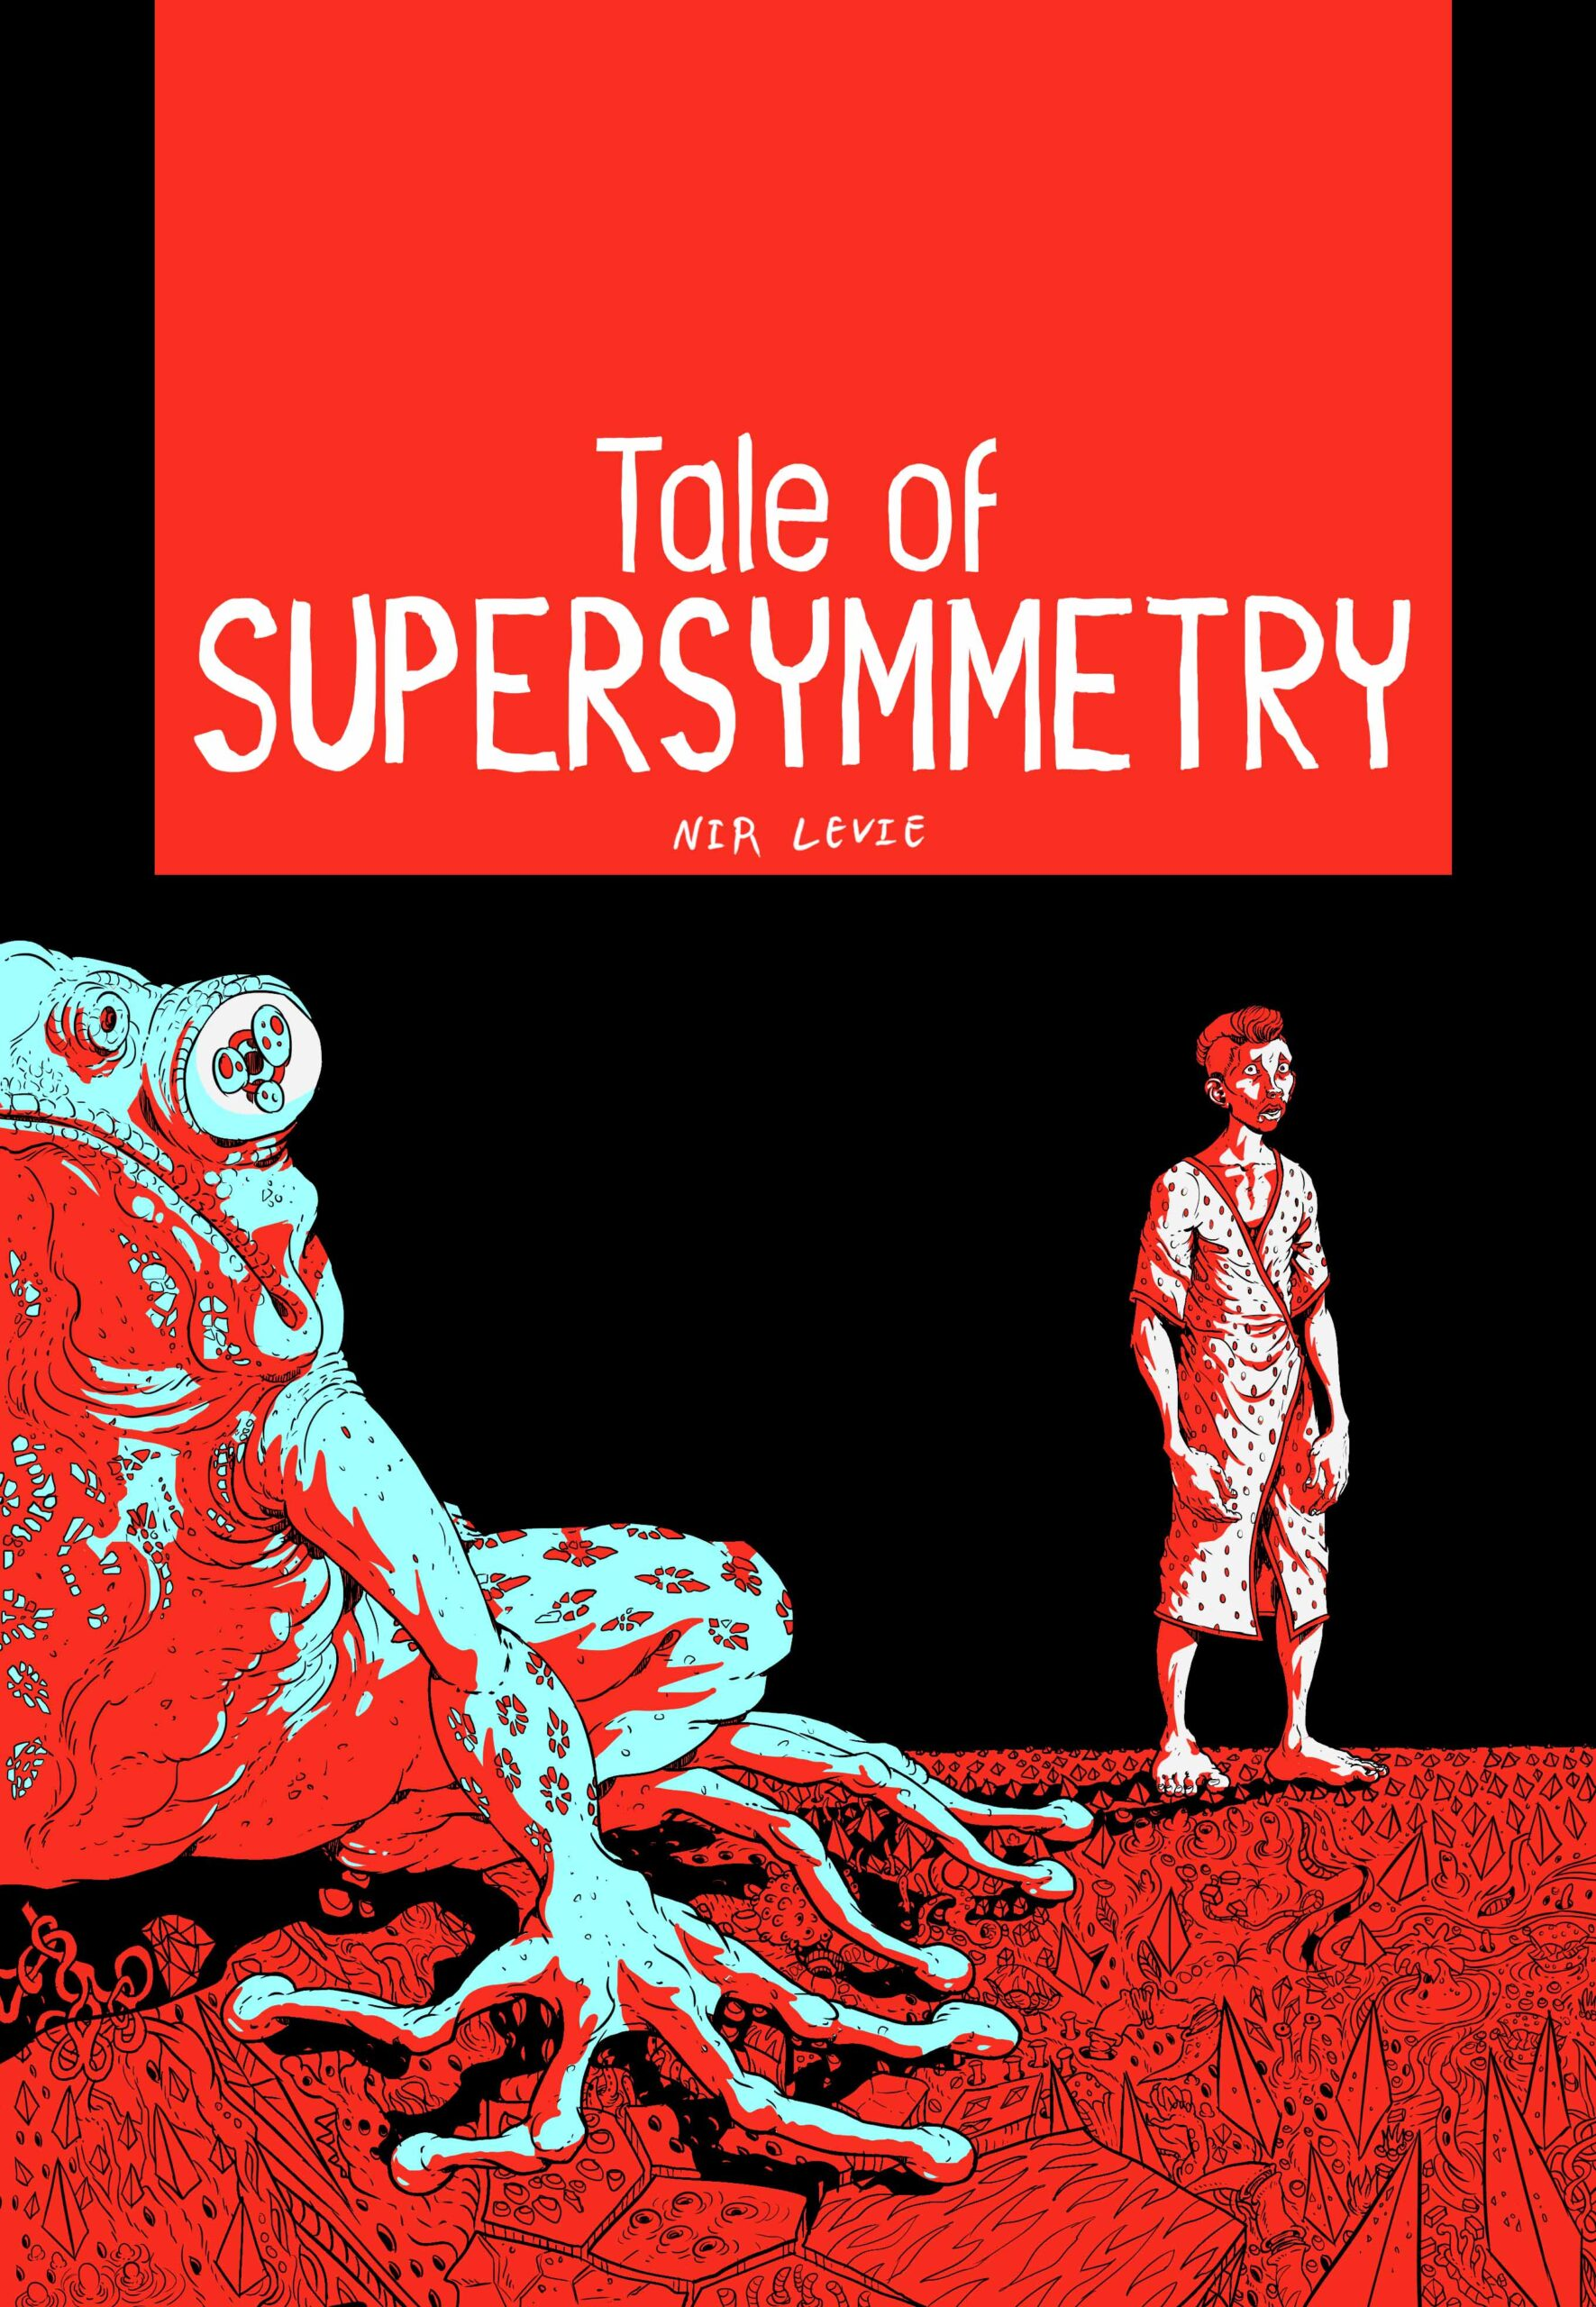 A Tale of Supersymmetry by Nir Levie